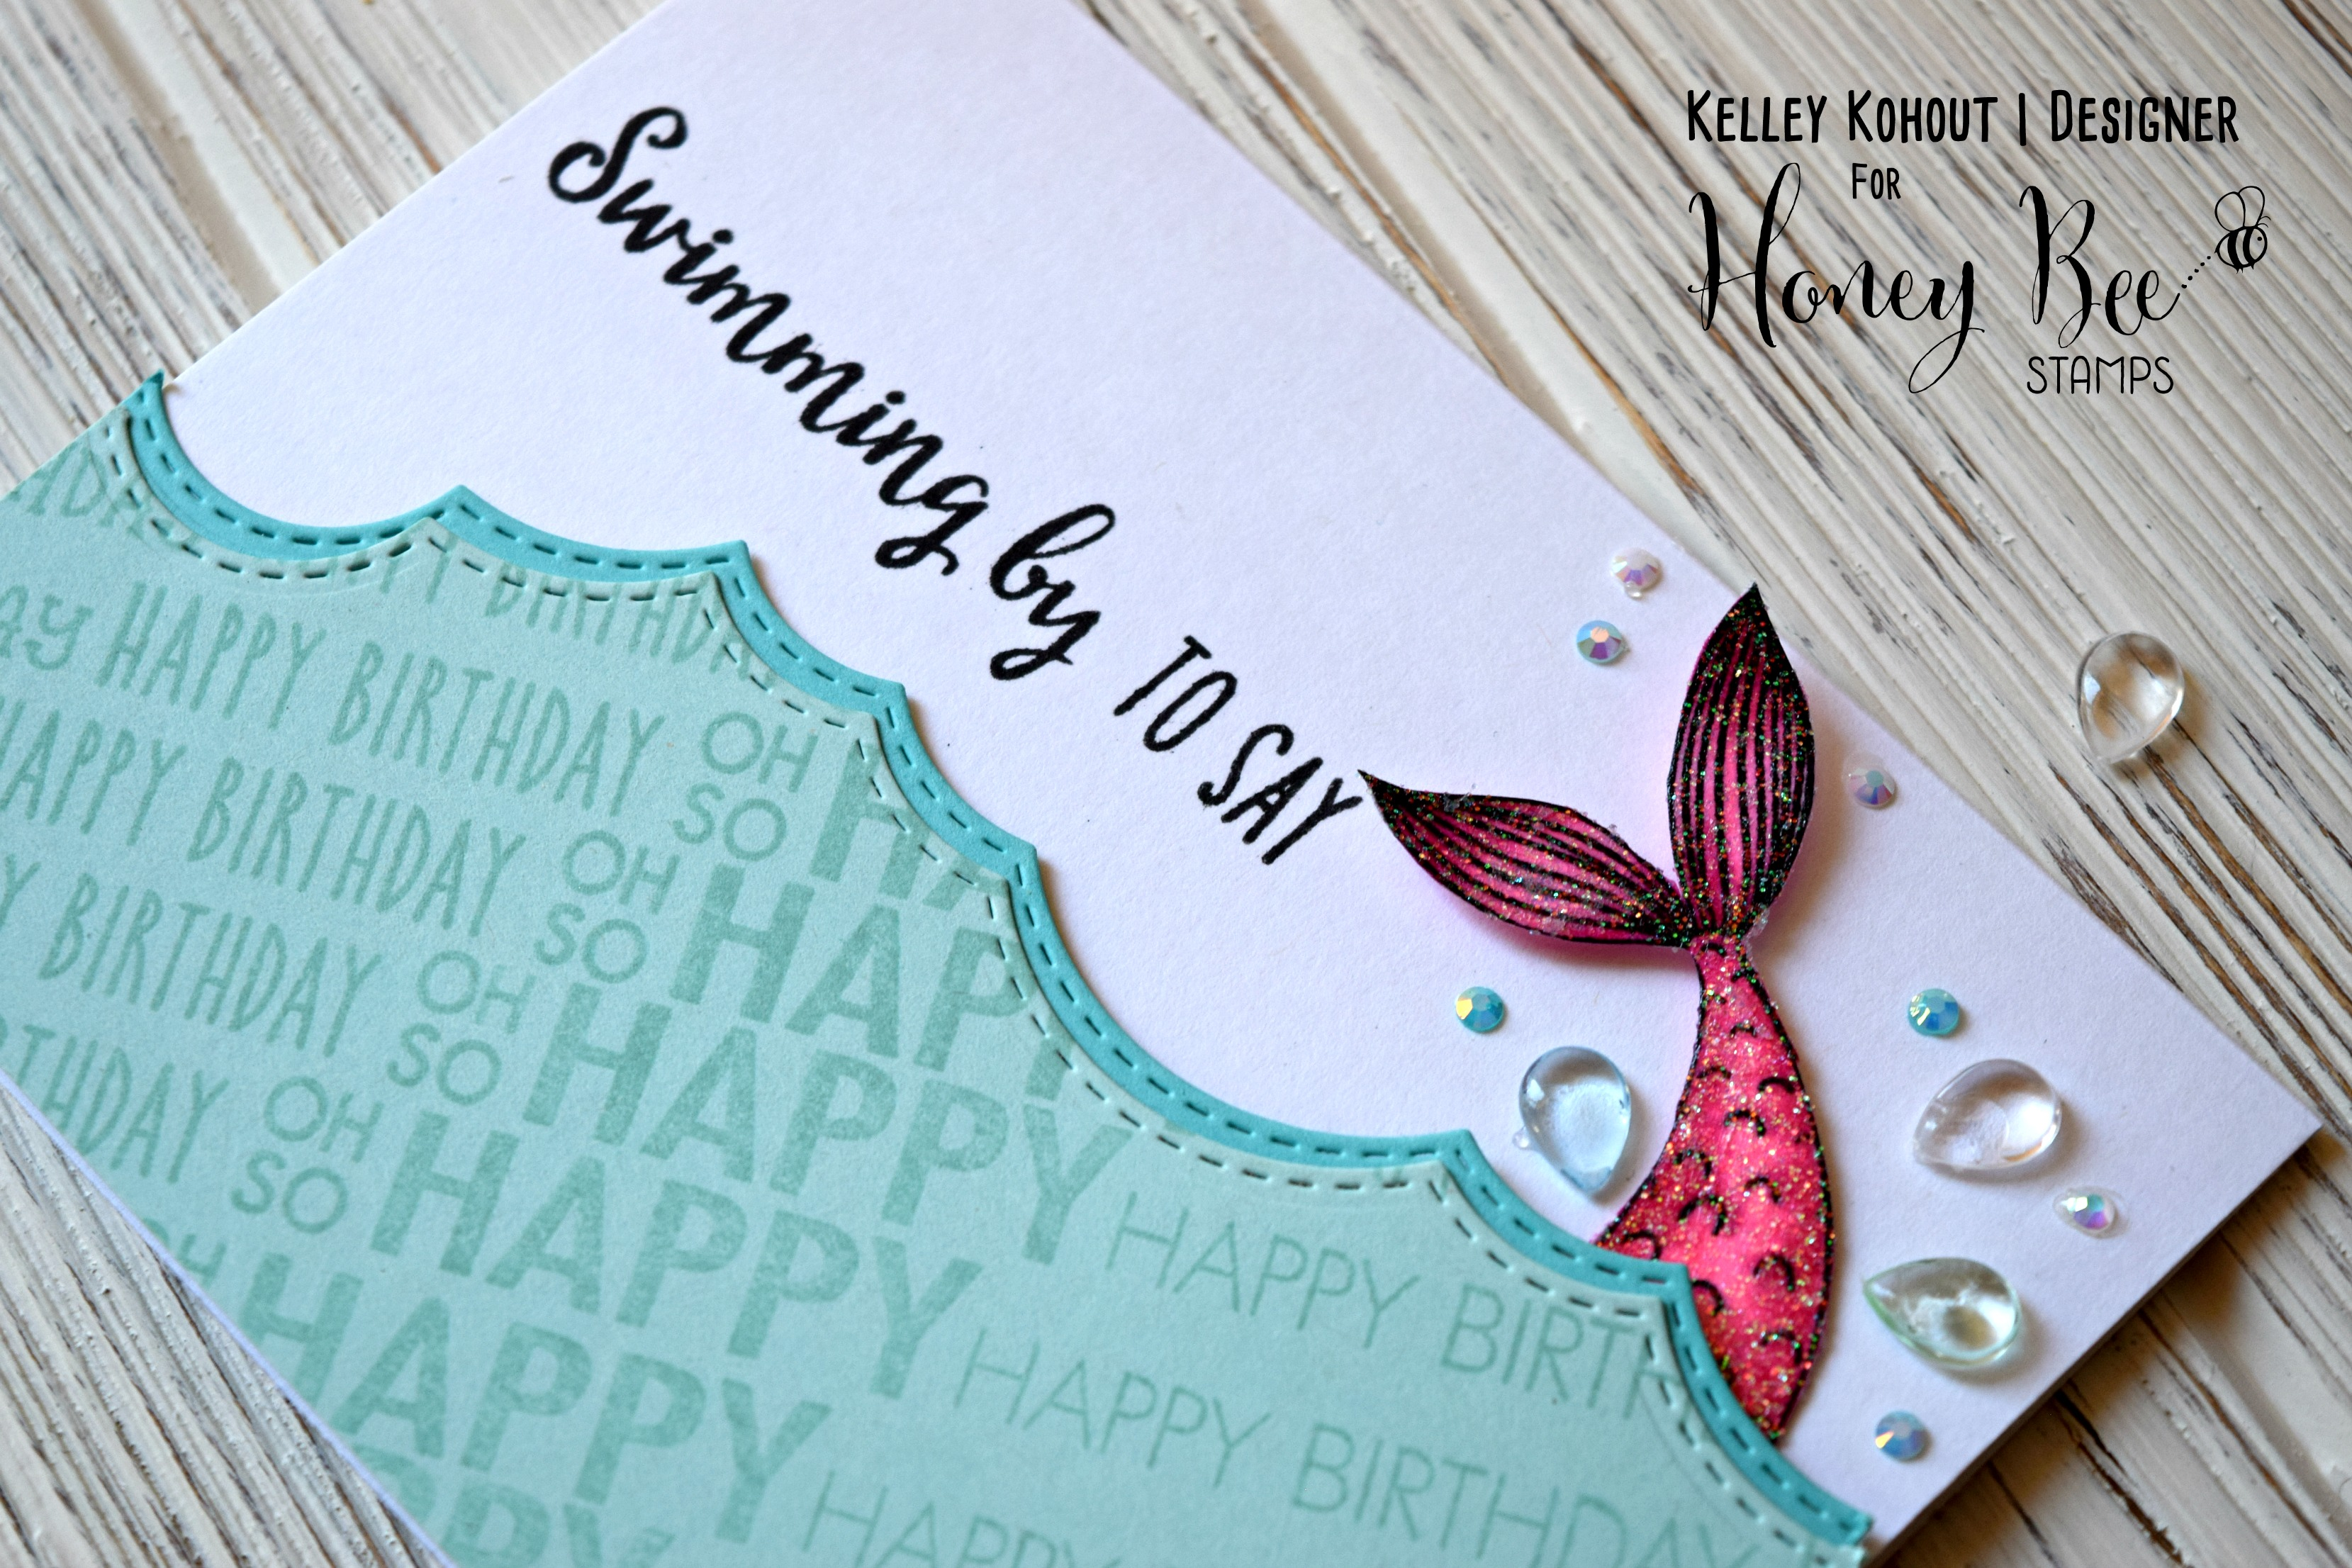 Make a splash! Use lots of your sentiment stamps! – Honey Bee Stamps